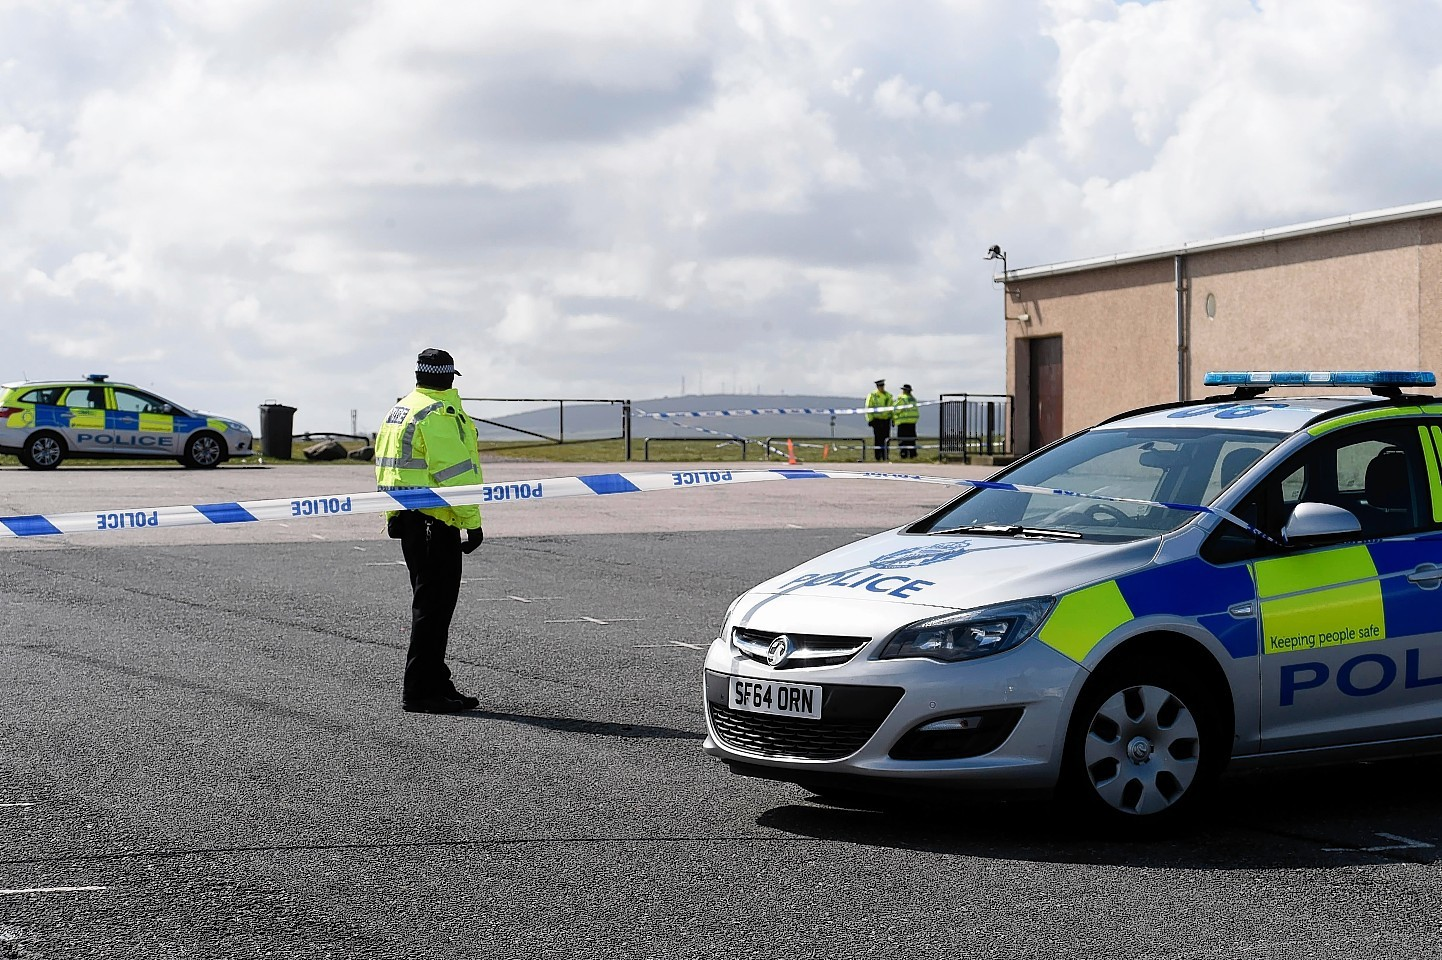 Police closed off the area round where Mr Anderson's body was found